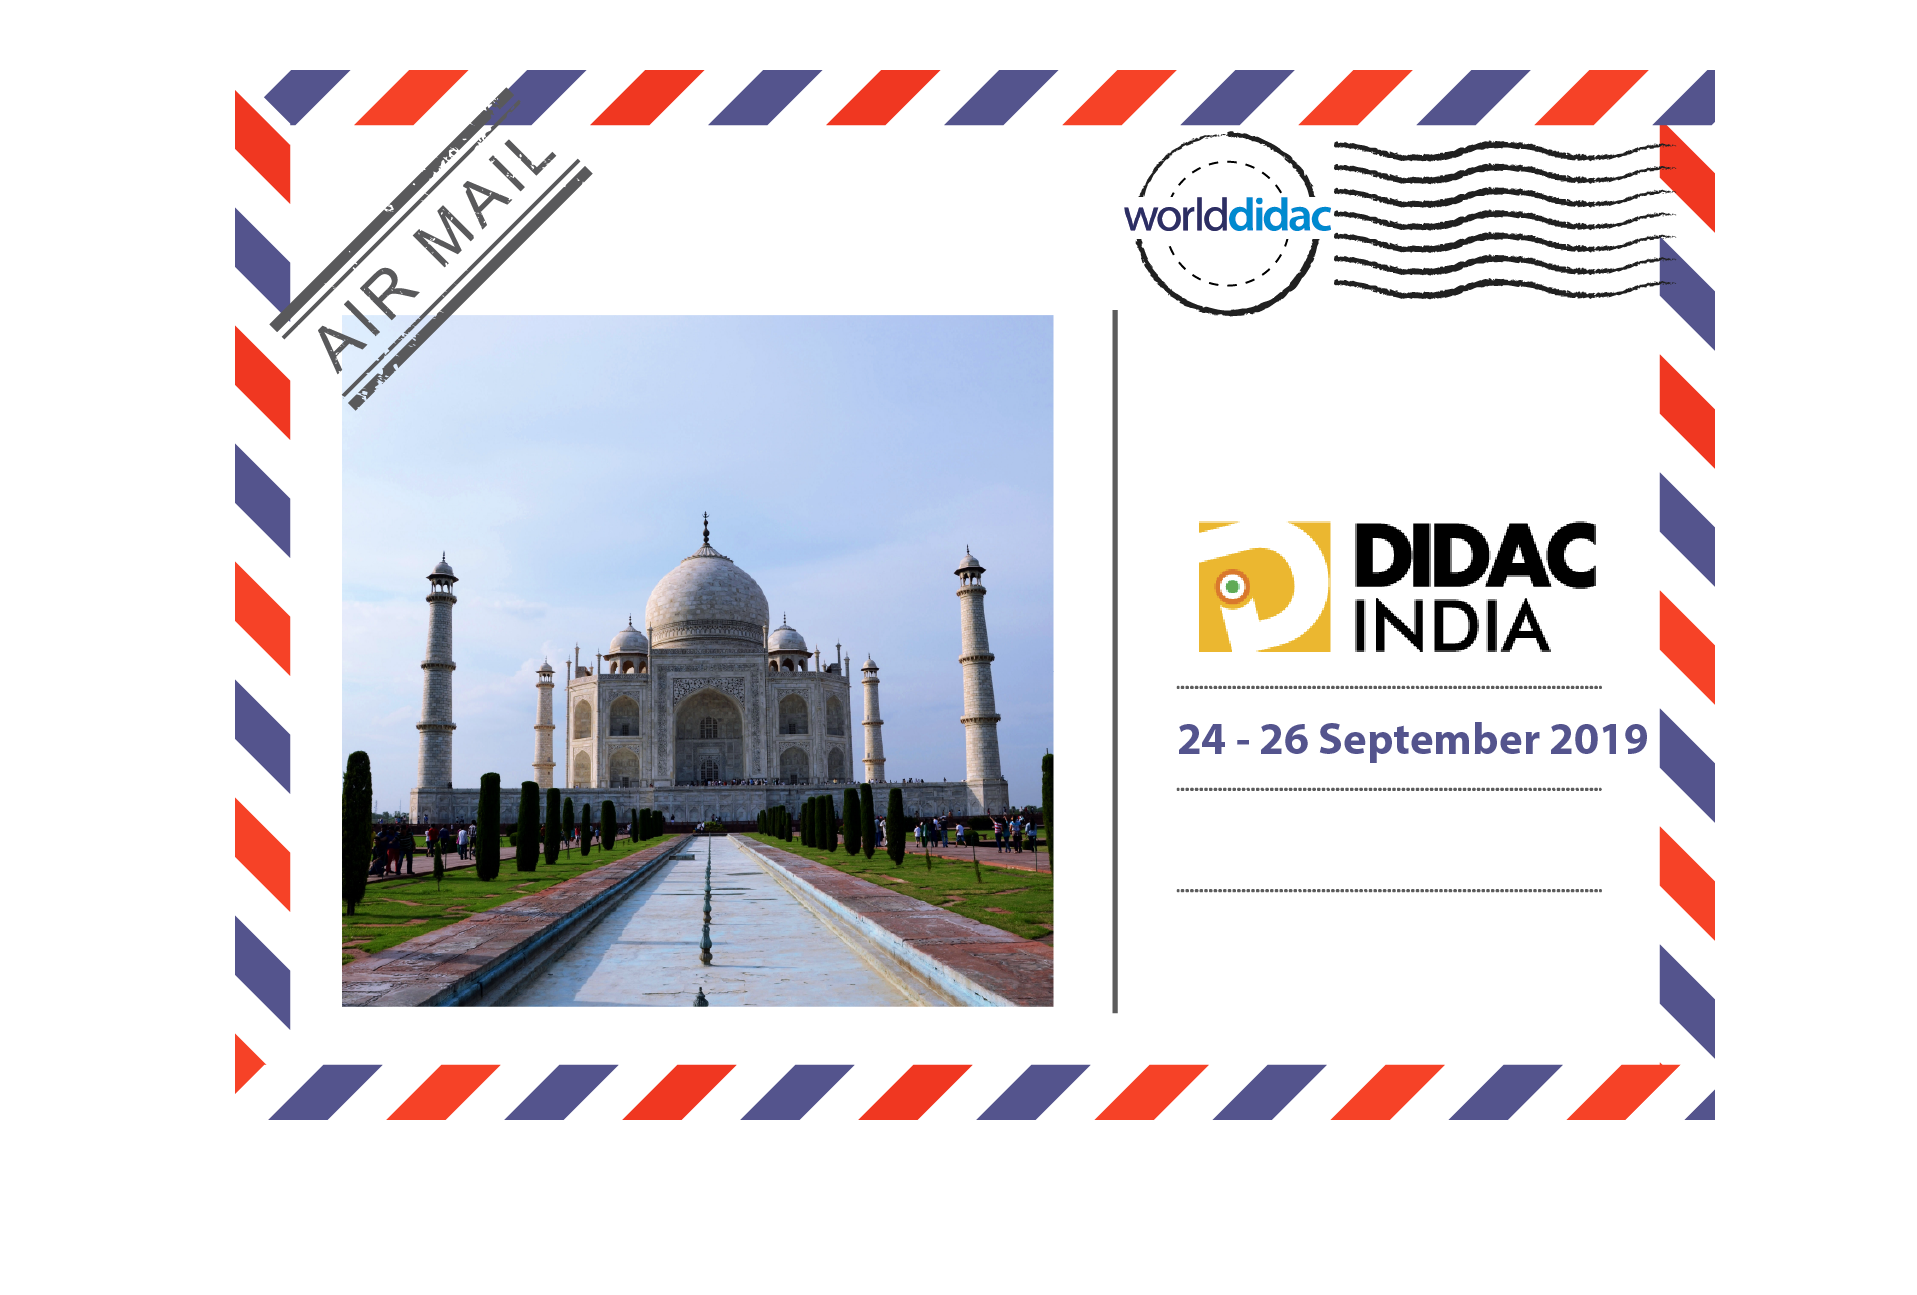 Air Mail Didac India - Logo and Picture of Taj Mahal